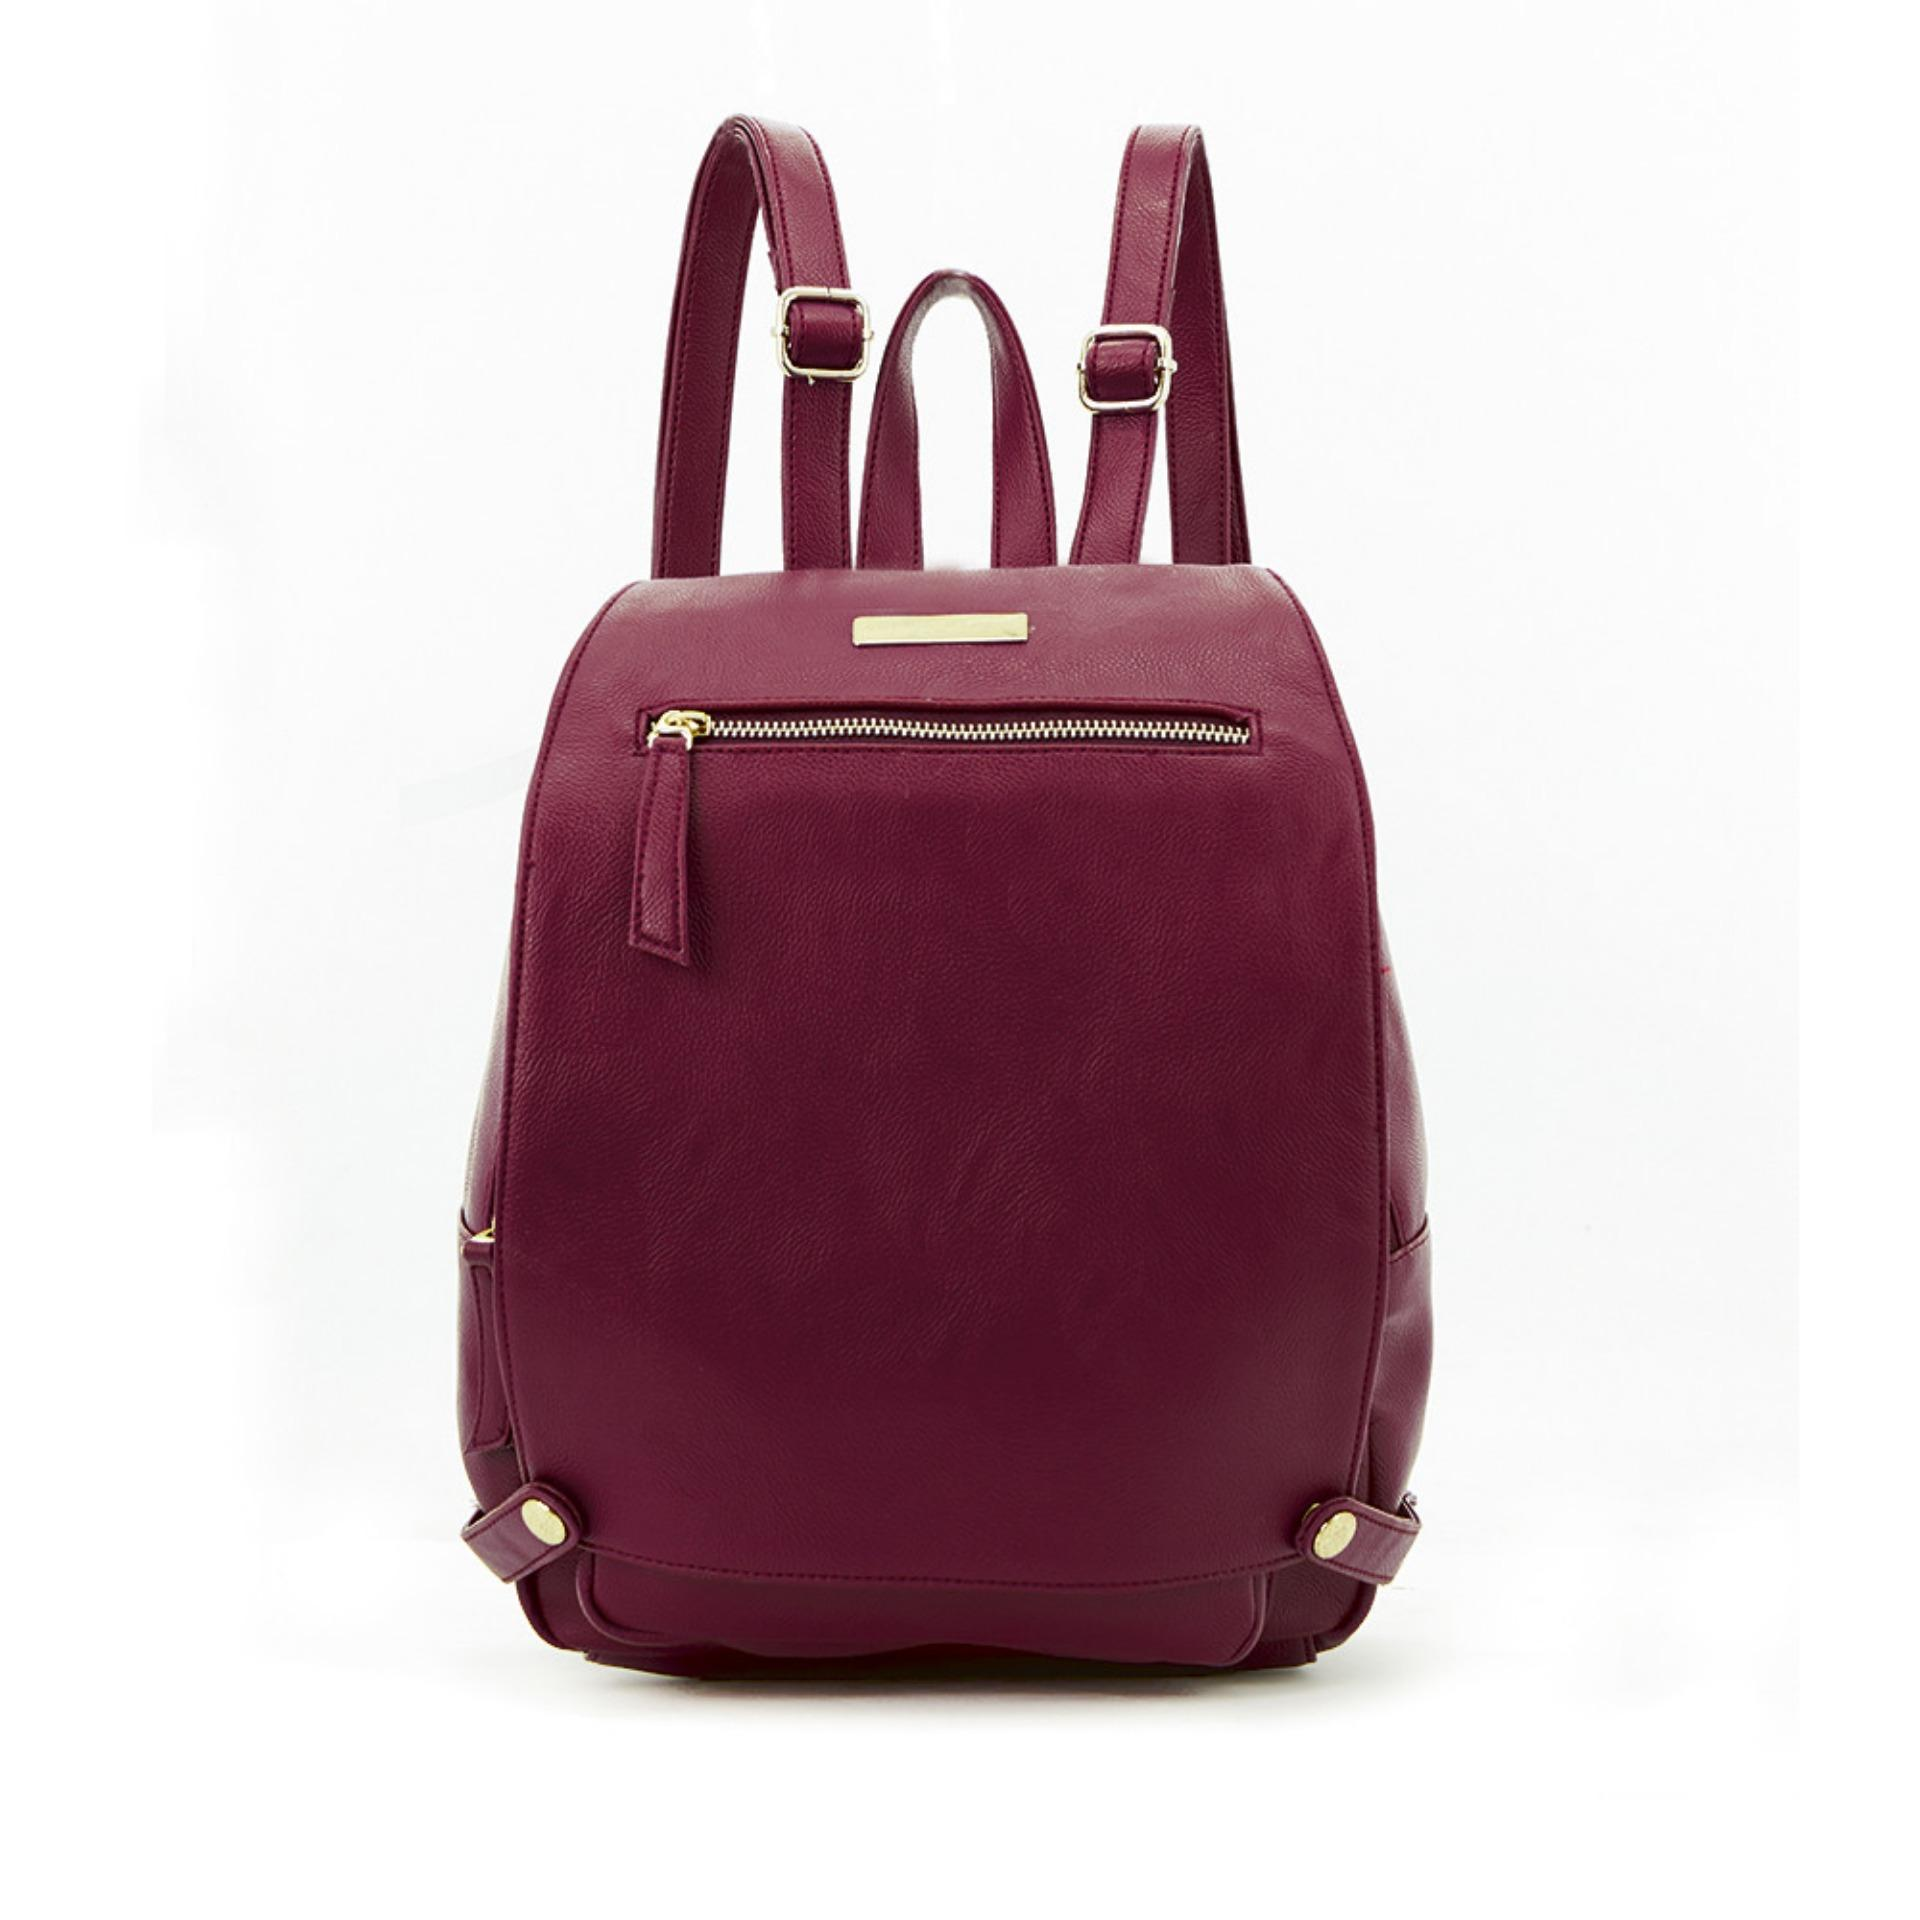 Sophie Paris Tas Ransel Backpack Wanita Import Branded Colmari Bag T4295M2 - Maroon .